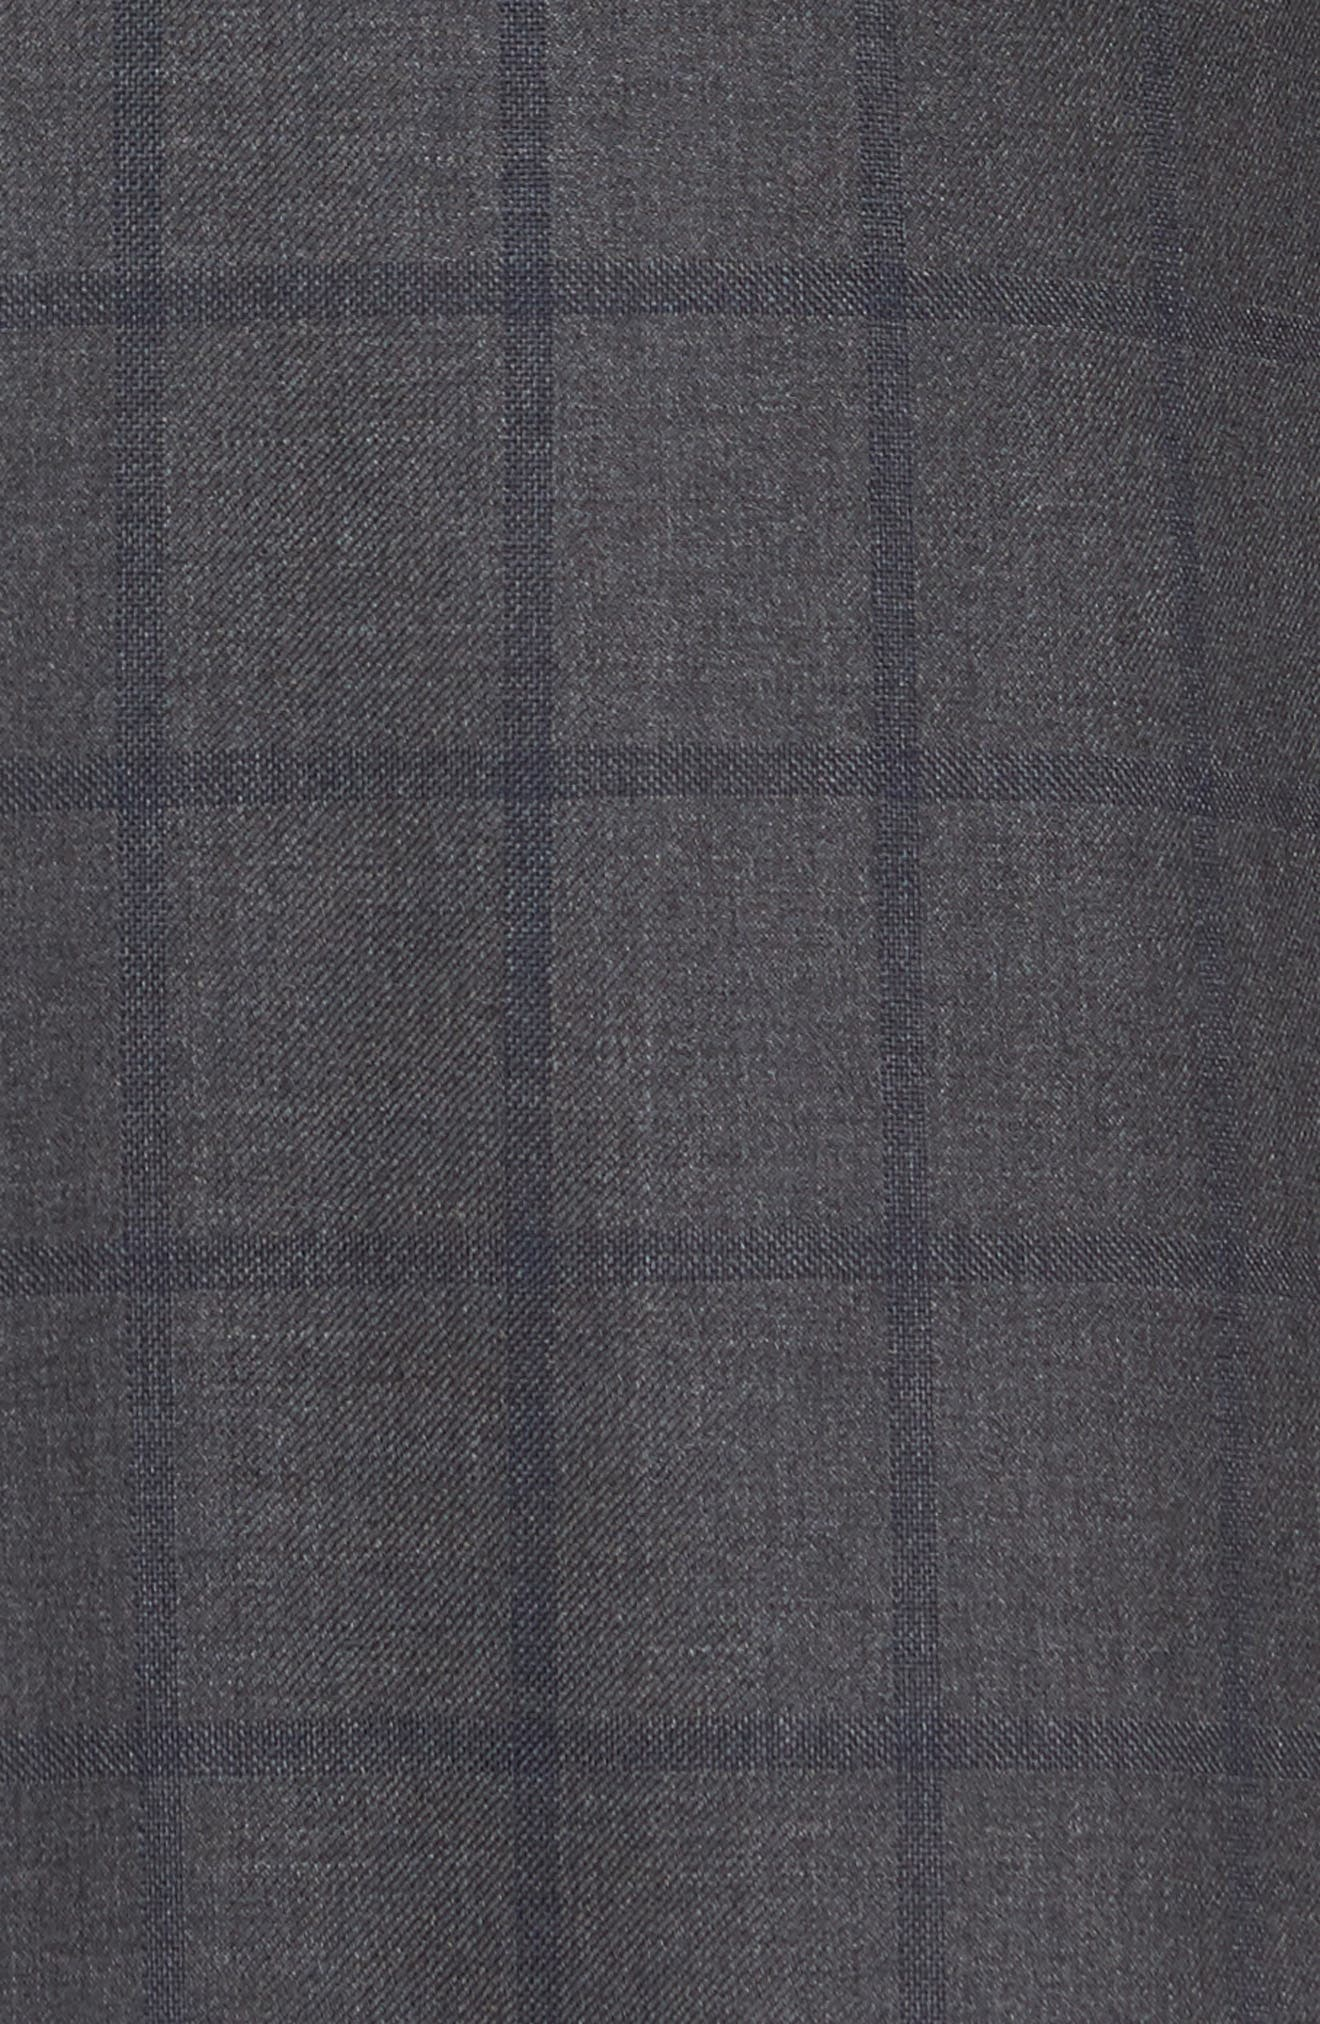 Classic Fit Windowpane Wool Suit,                             Alternate thumbnail 7, color,                             344